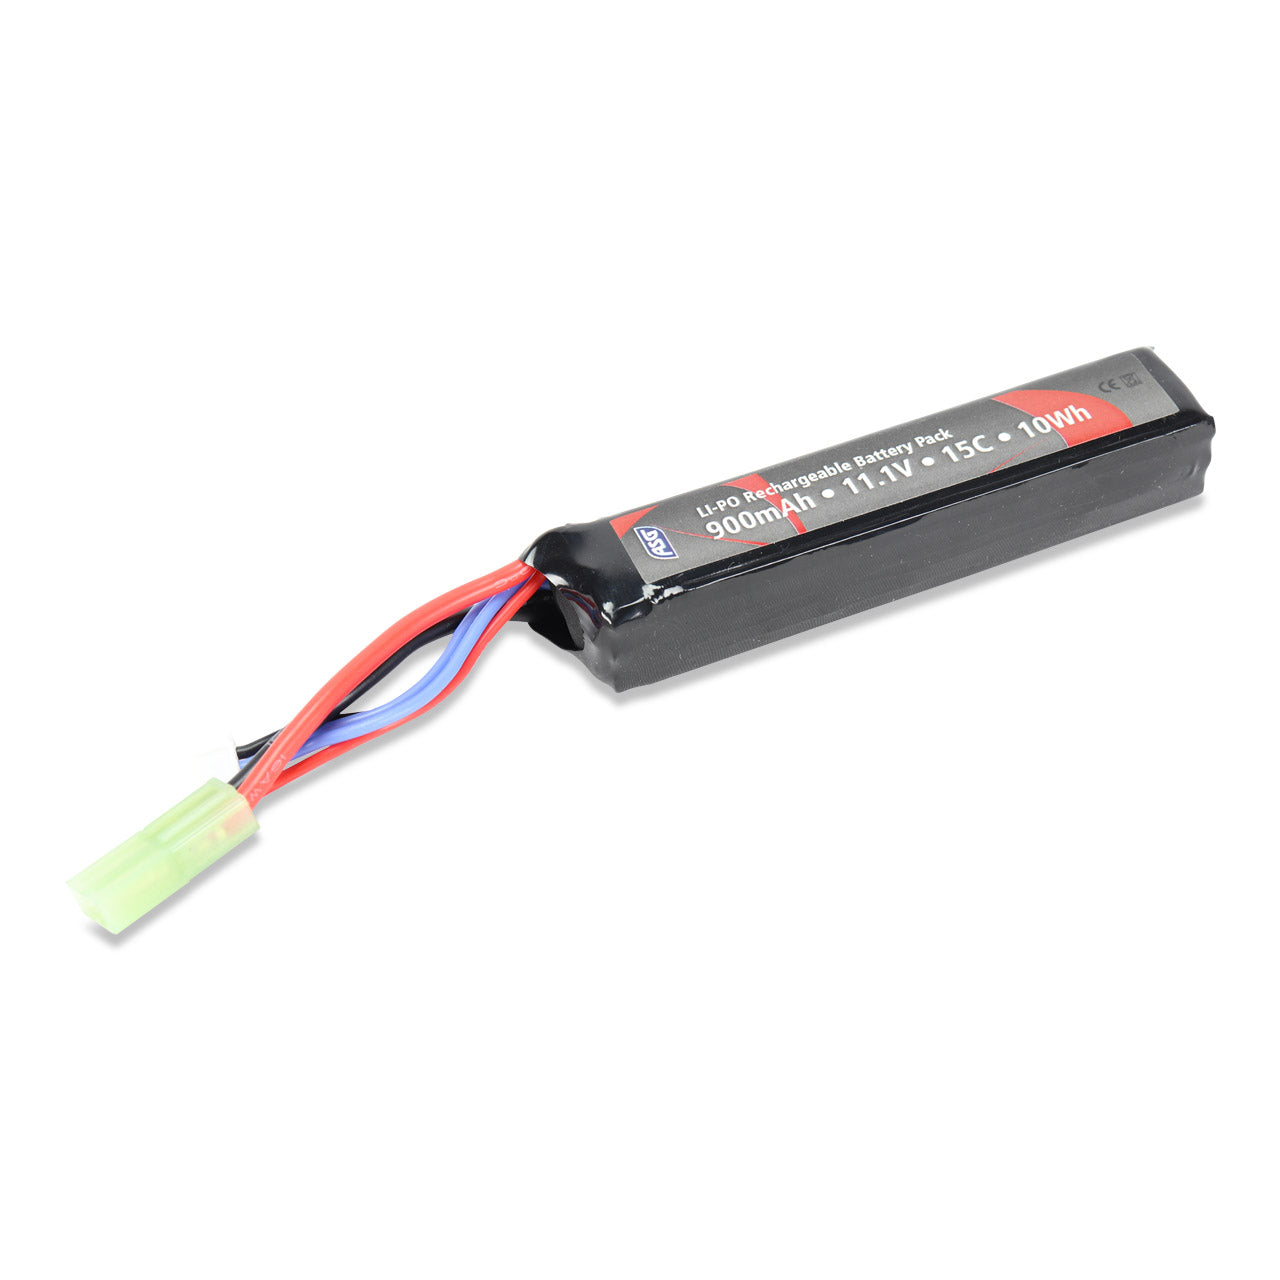 ASG 11.1V 900mAh LiPo Stick Type Battery with Small Tamiya Connector